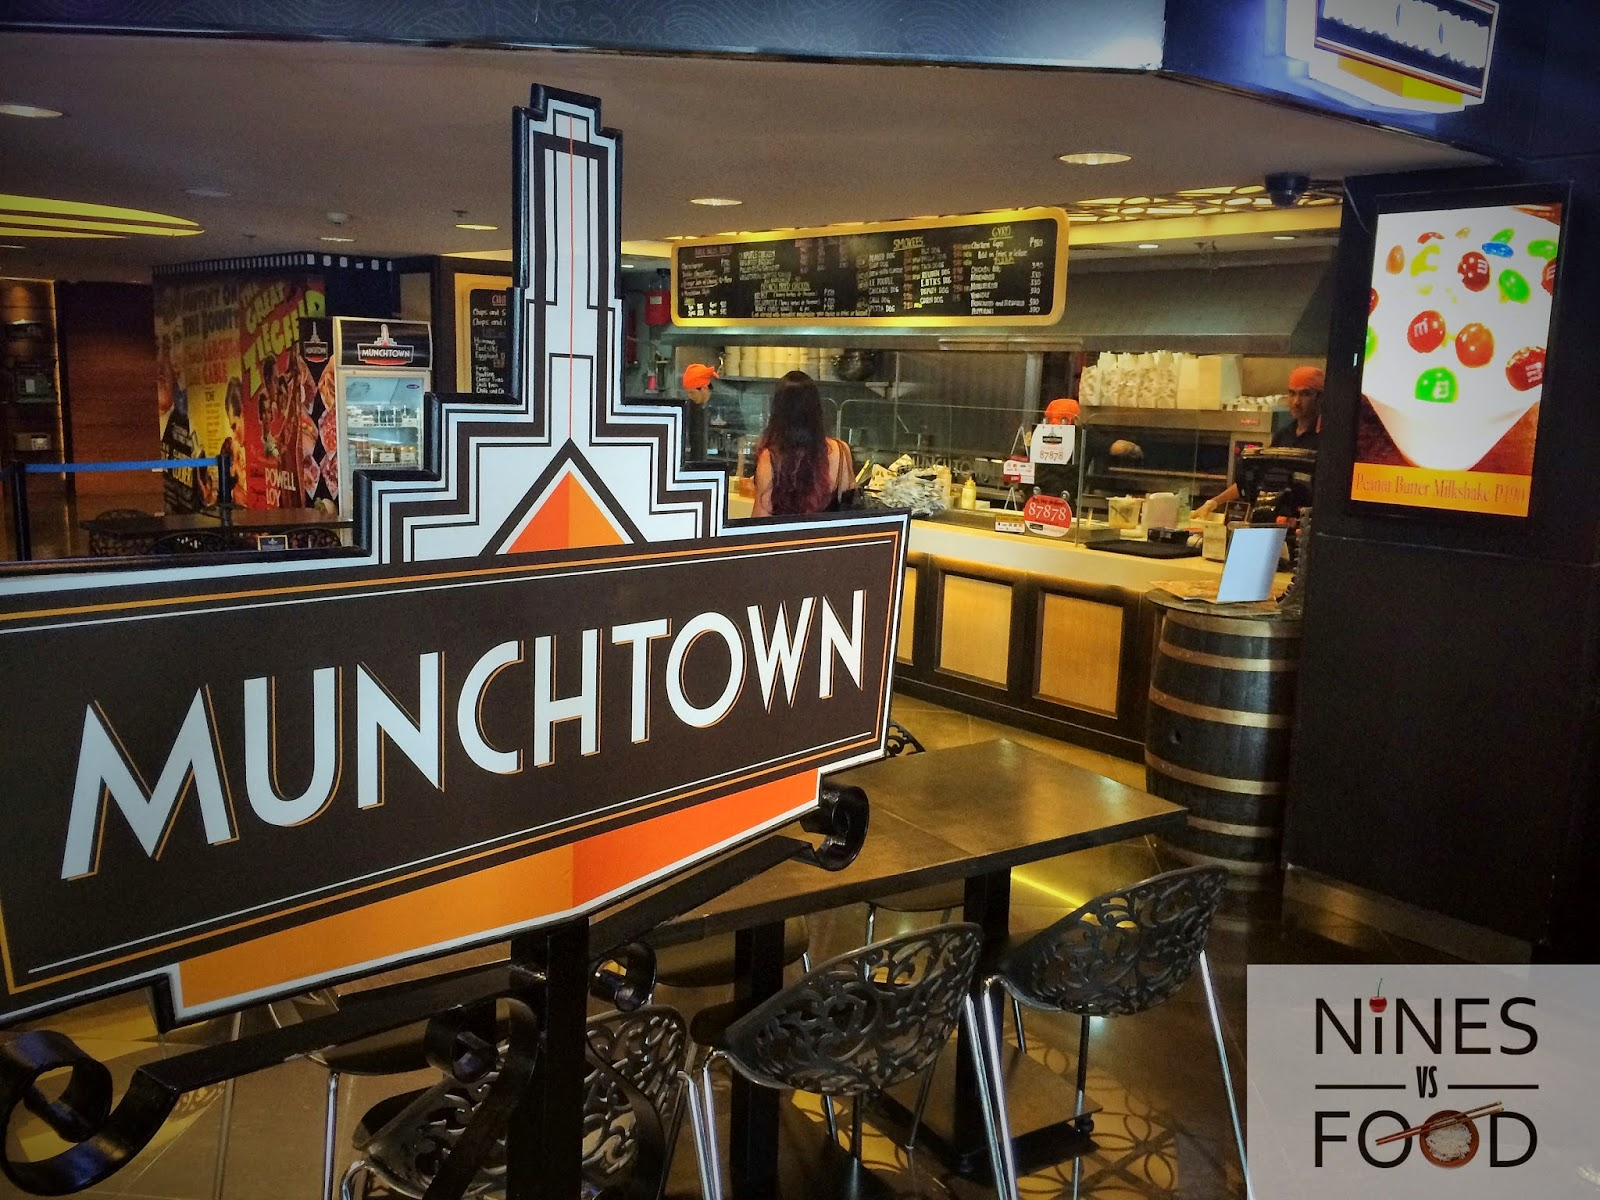 Nines vs. Food - Munchtown Greenhills Promenade-1.jpg